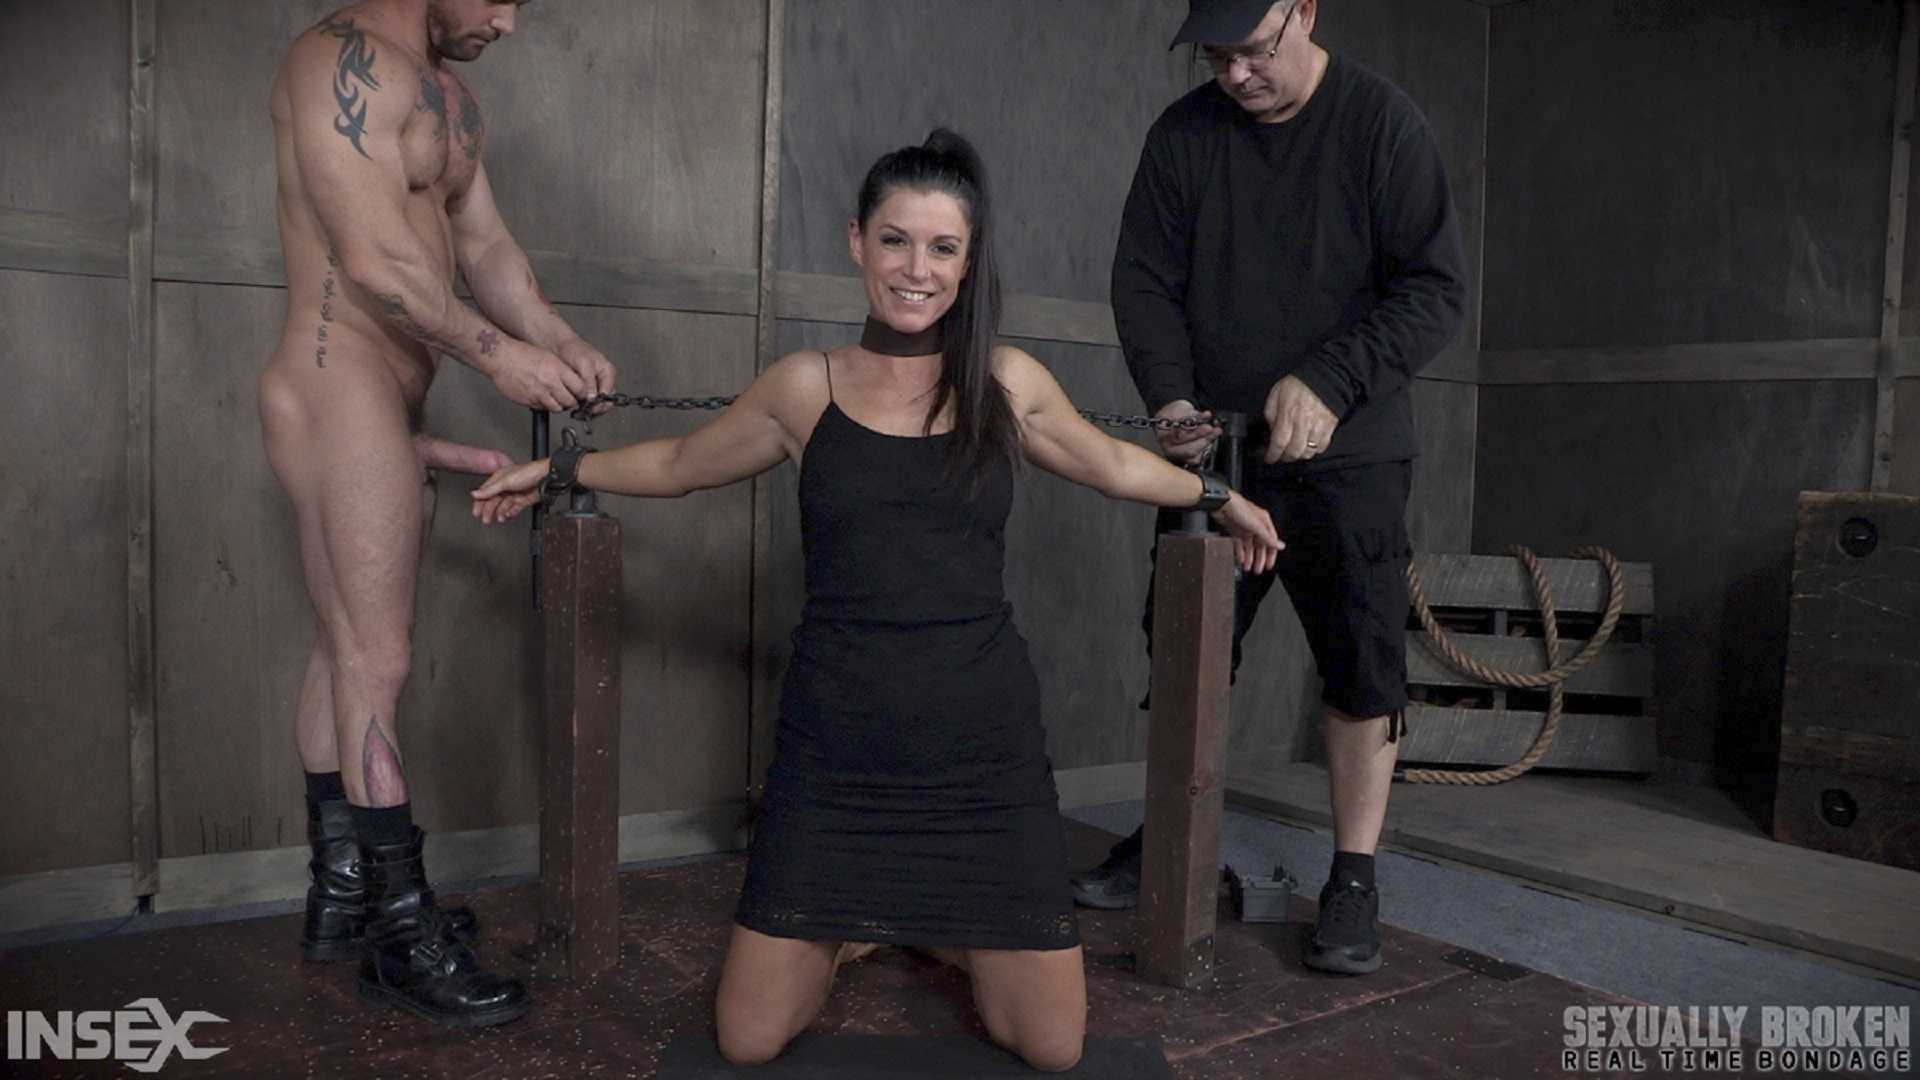 India Summer's Recorded Live feed from May: Brutal bondage, fucking and deepthroating | HD 720p | June 5, 2017